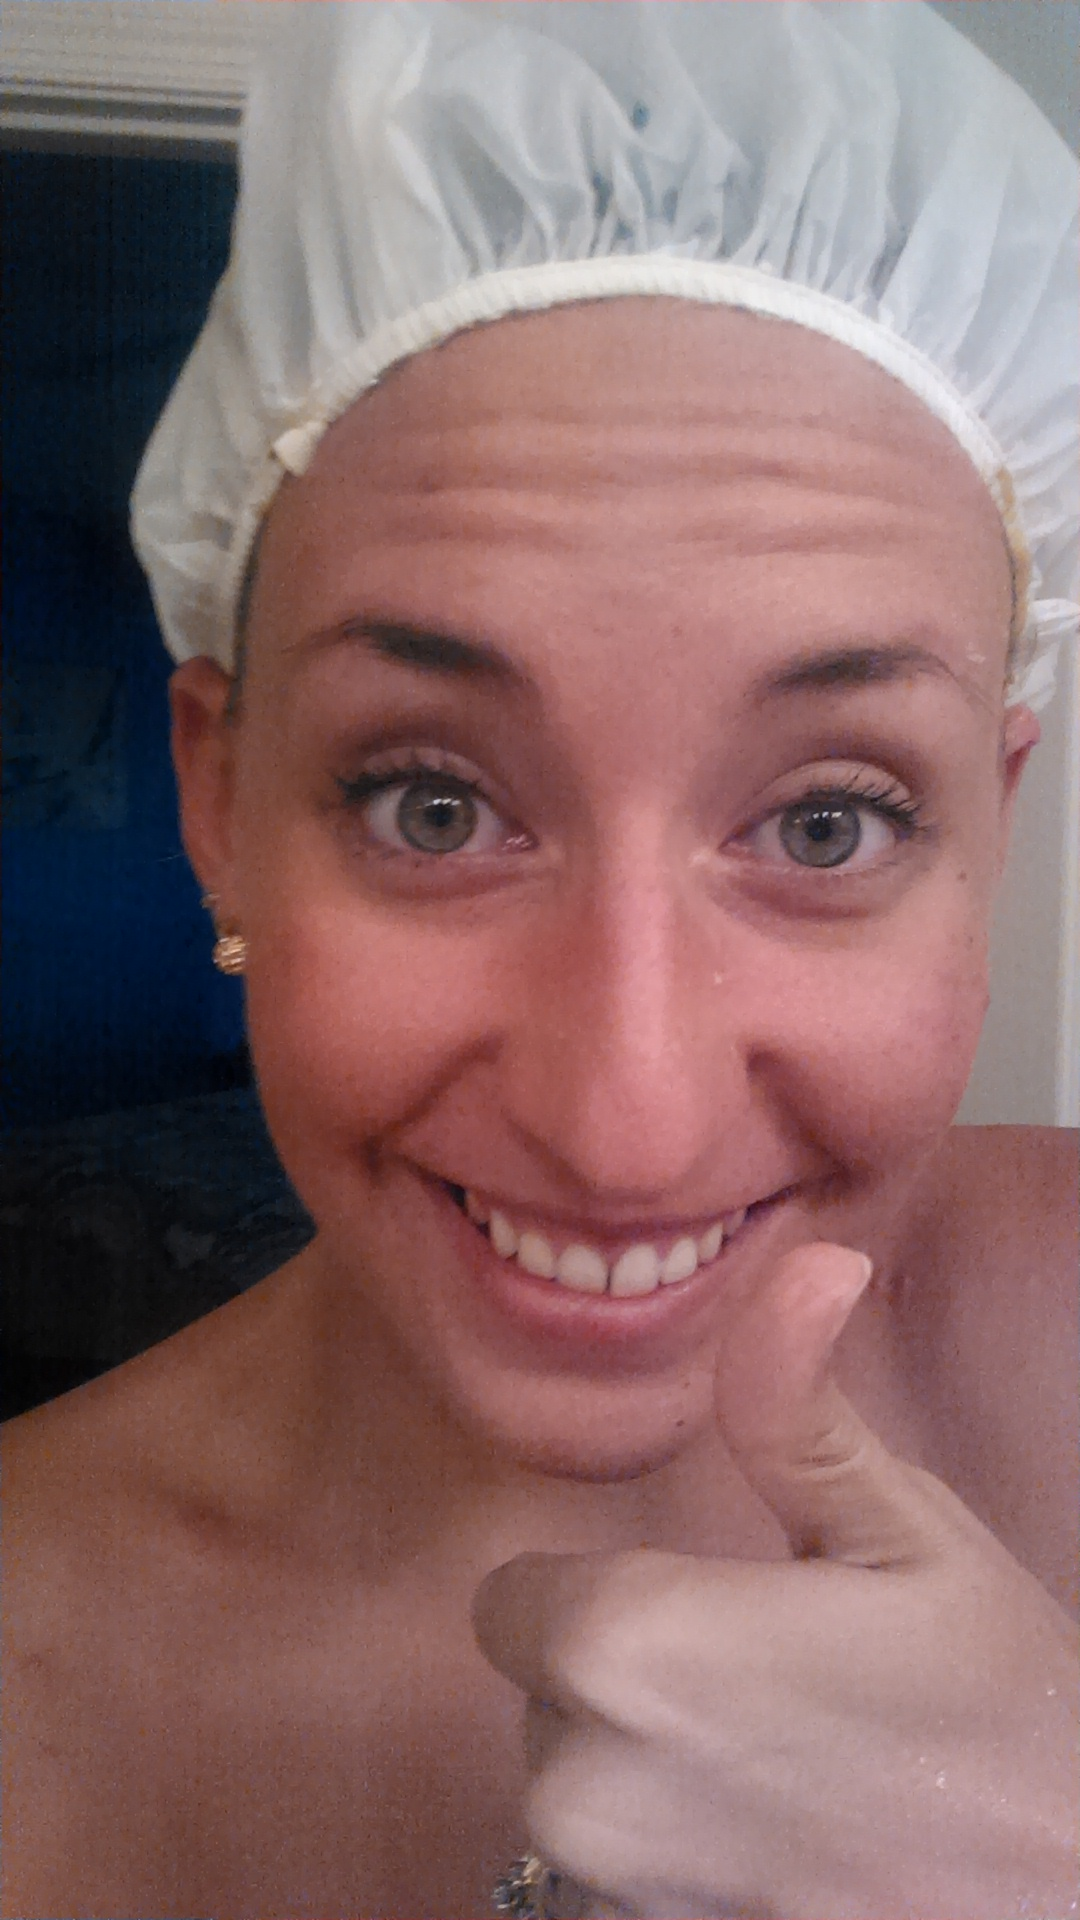 Then came the shower cap! I hopped in the bath for 20 mins before rinsing.